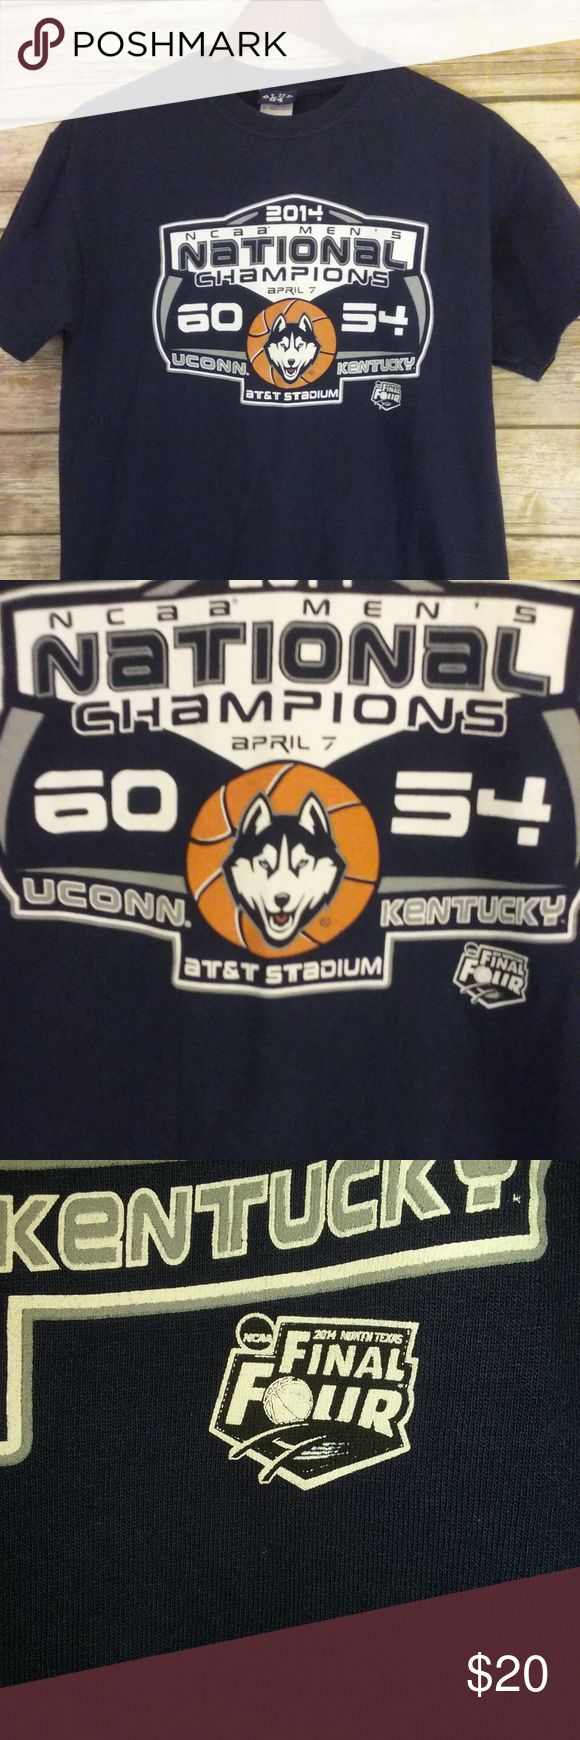 "UCONN NCAA 2014 Men's Champs T-Shirt Size Medium Nice UCONN Final Four Men's Basketball National Champions April 7, 2014 UCONN vs. Kentucky t-shirt showing final score of 60 to 54.  Made by Blue 84, men's size medium measures approximately 26.5"" long from back collar and 18"" underarm to underarm. Please measure against current closet items :) Blue 84 Shirts Tees - Short Sleeve"